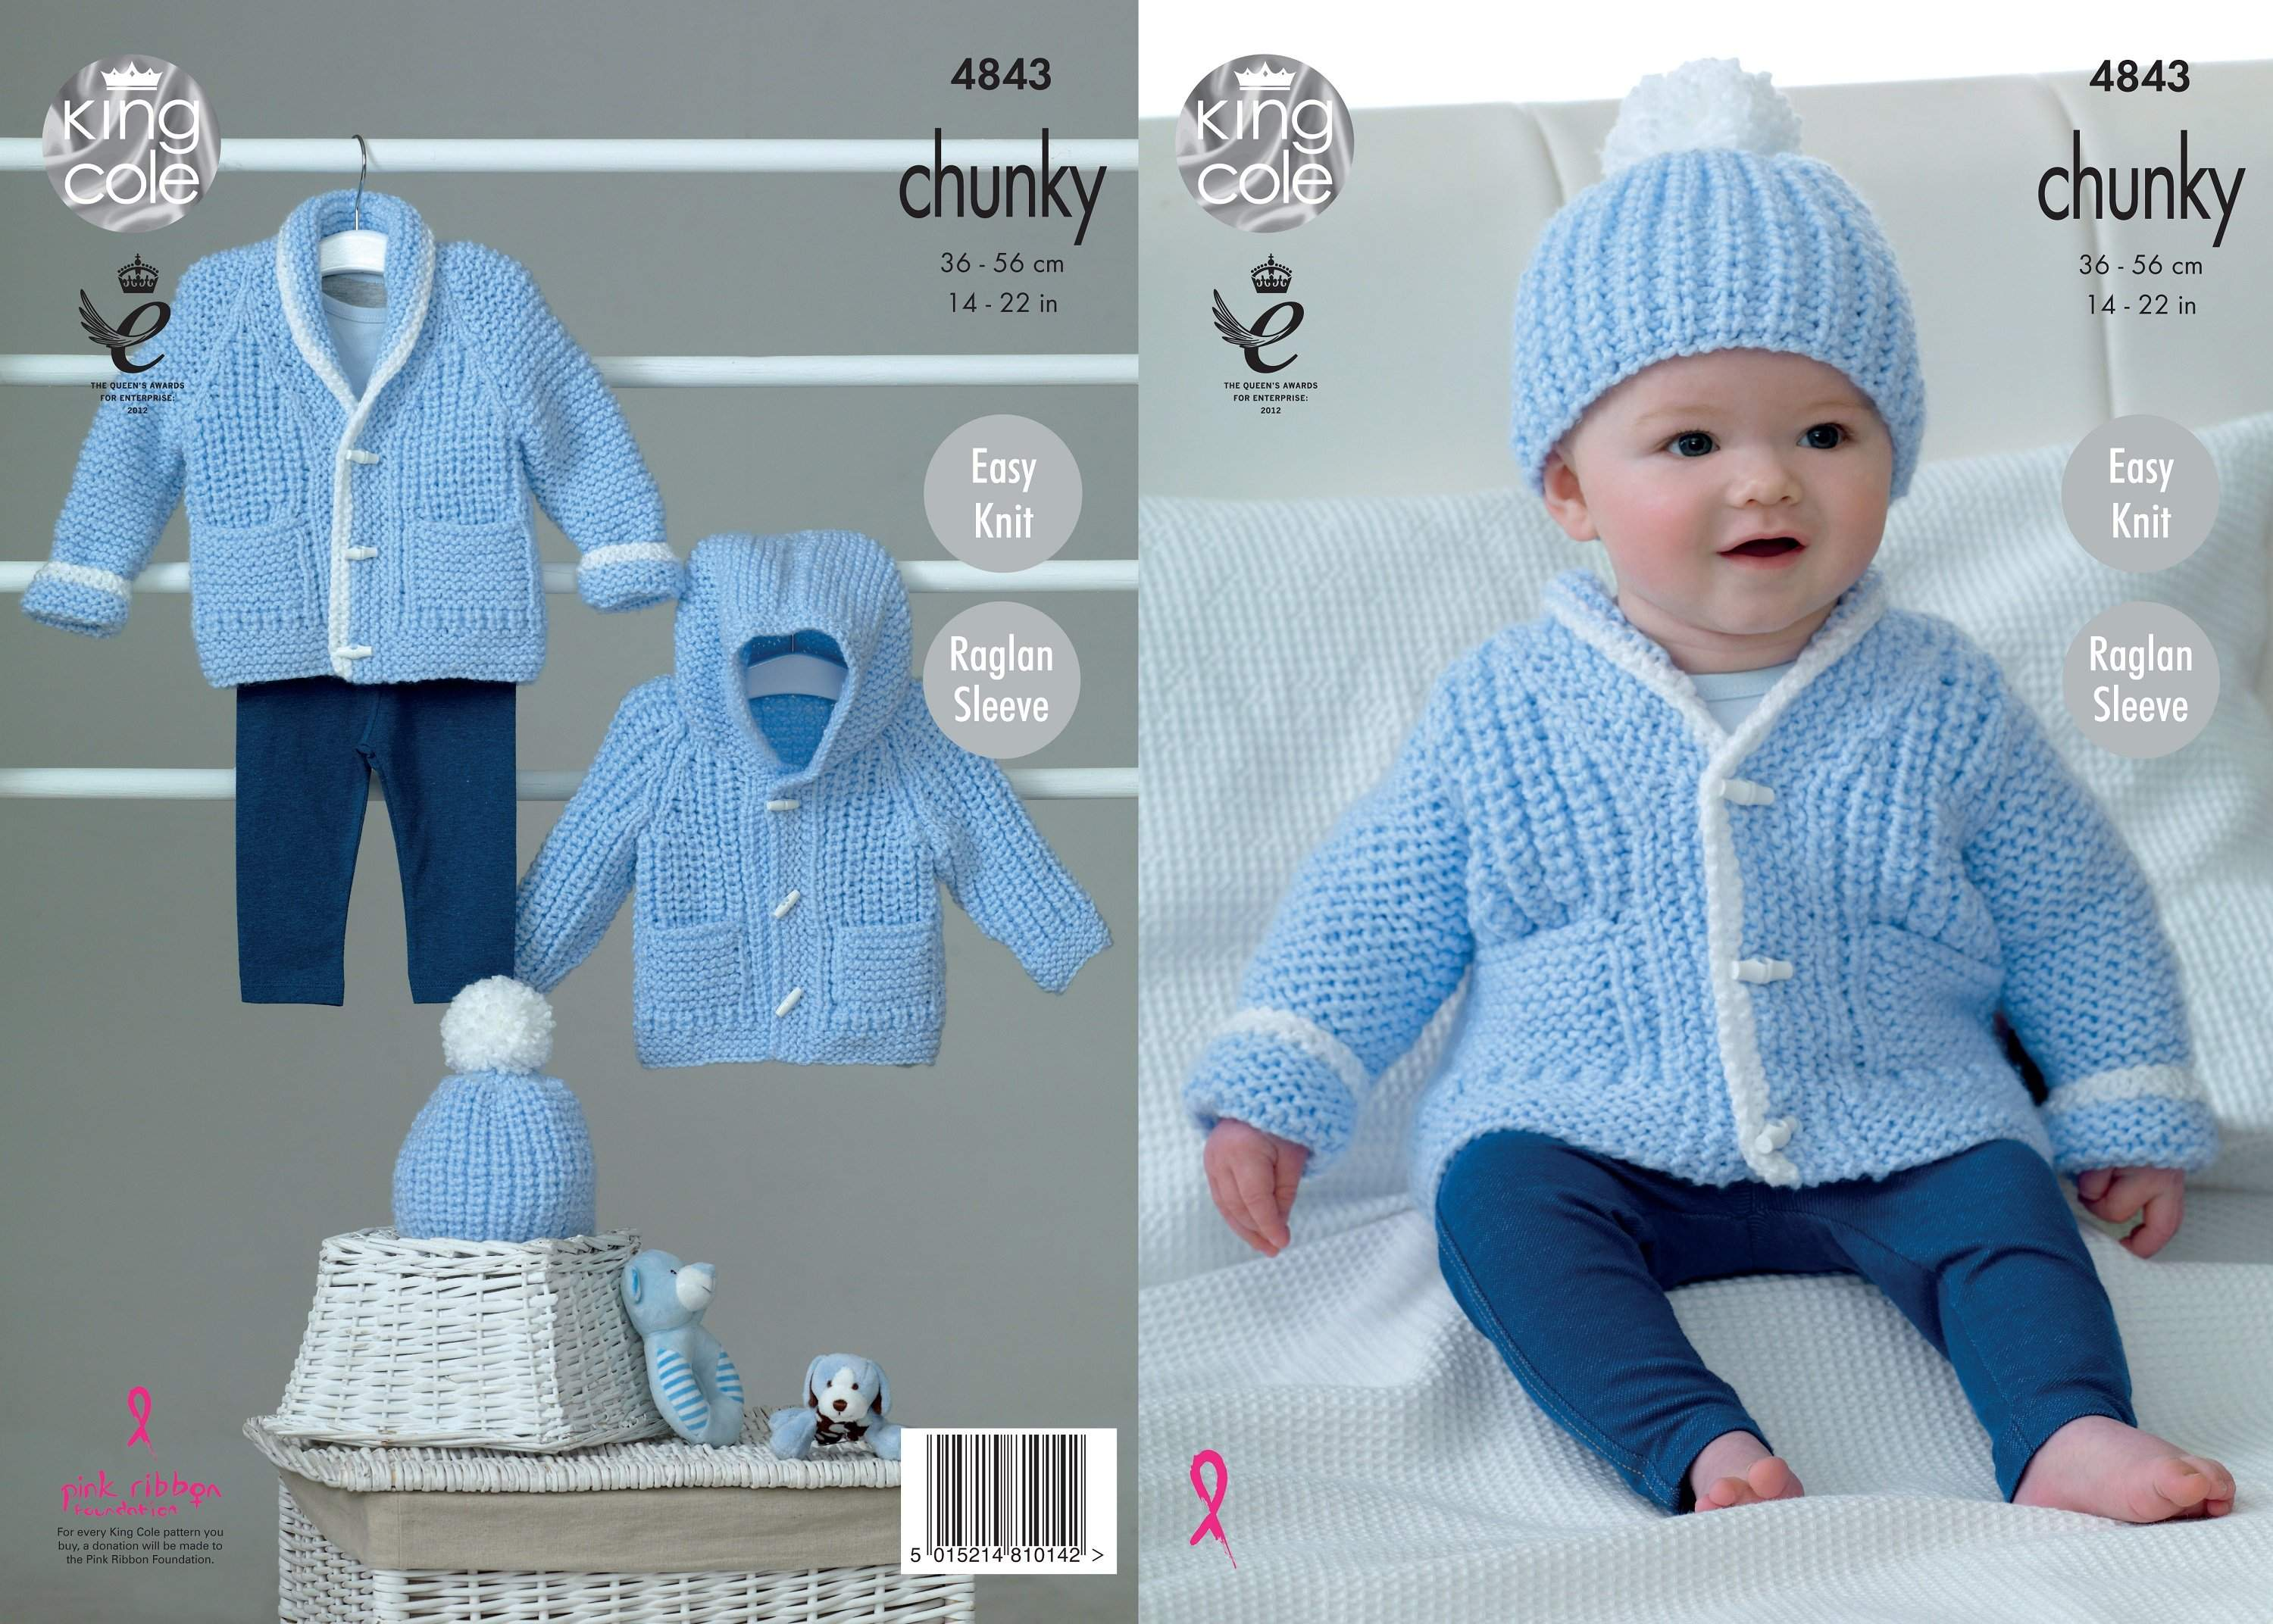 Babies Cardigan Hoodie And Beanie In King Cole Big Value Baby Chunky Deramores